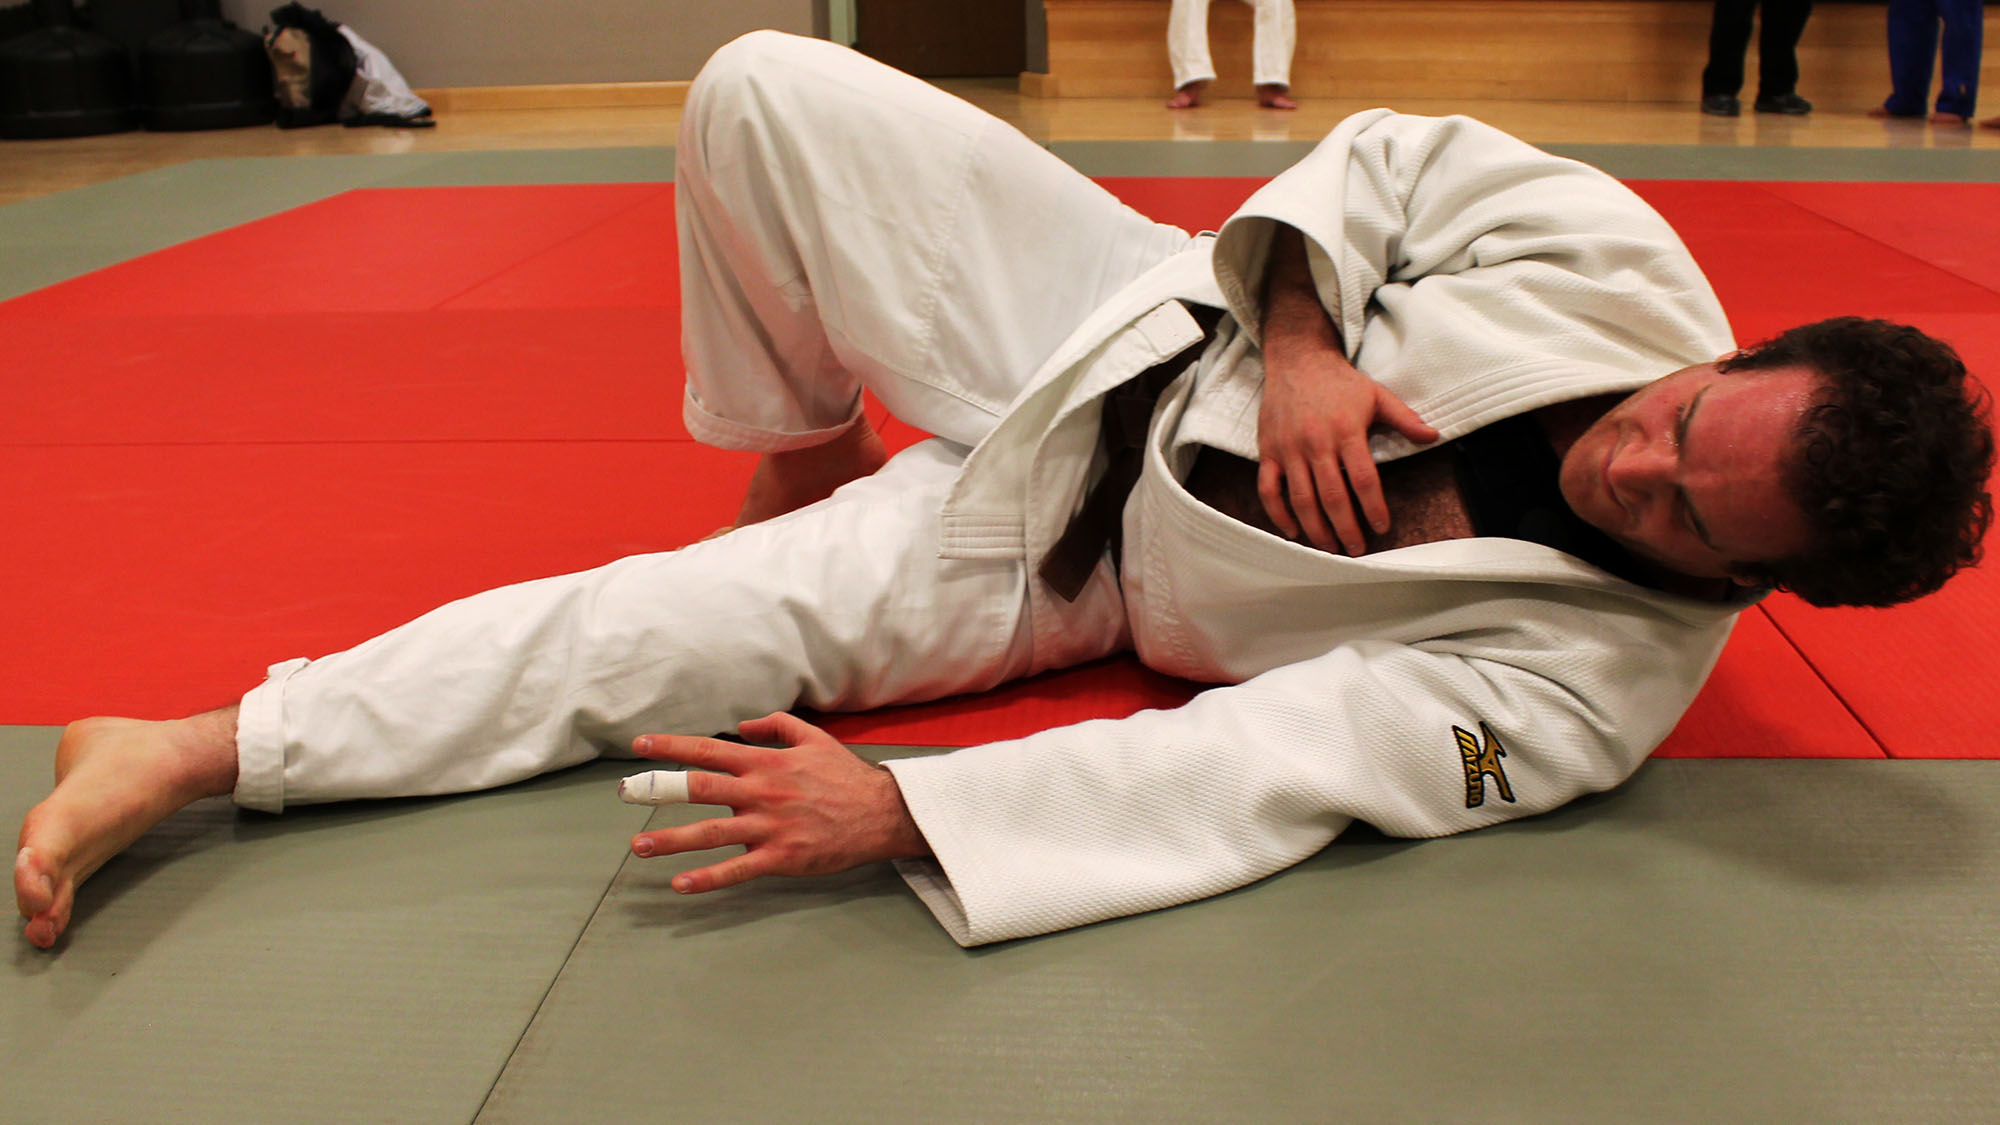 Aonghus Garrison practices falling during a judo session at the University of King's College.